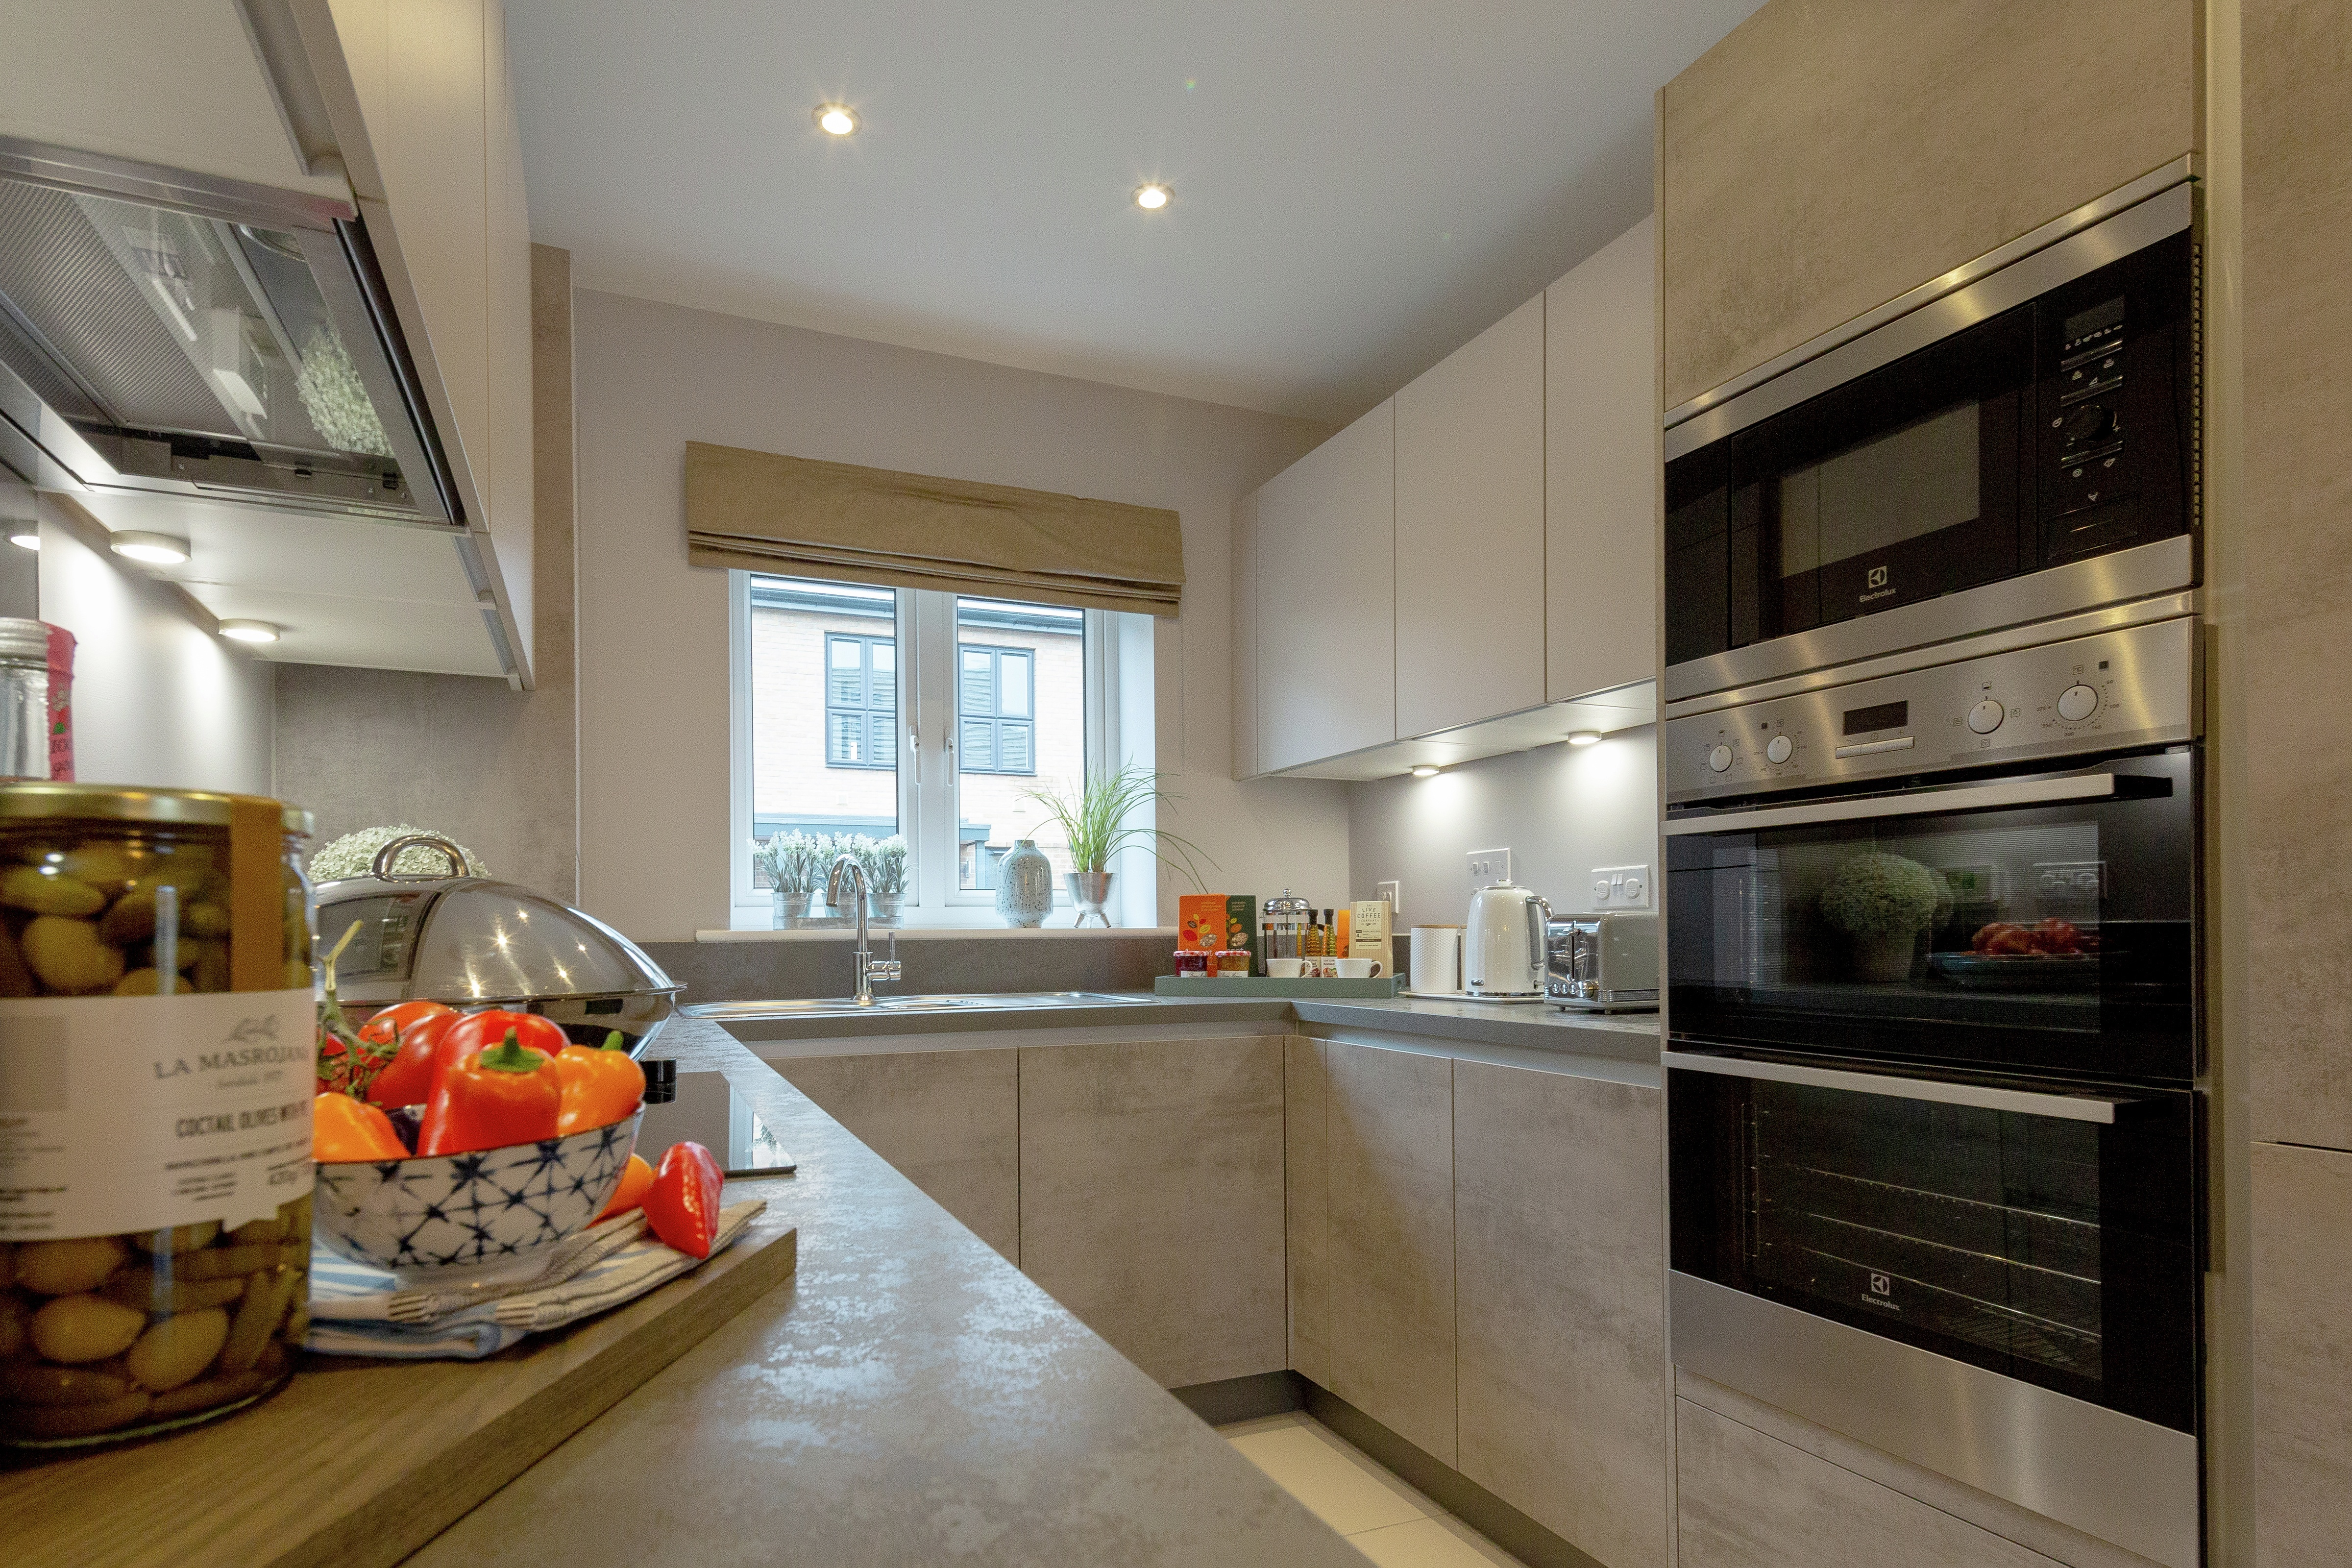 The Allward Is A Two Bedroom Family House Offered By Countryside Properties And In Joint Venture With Home Group As Part Of Its Highly Regarded